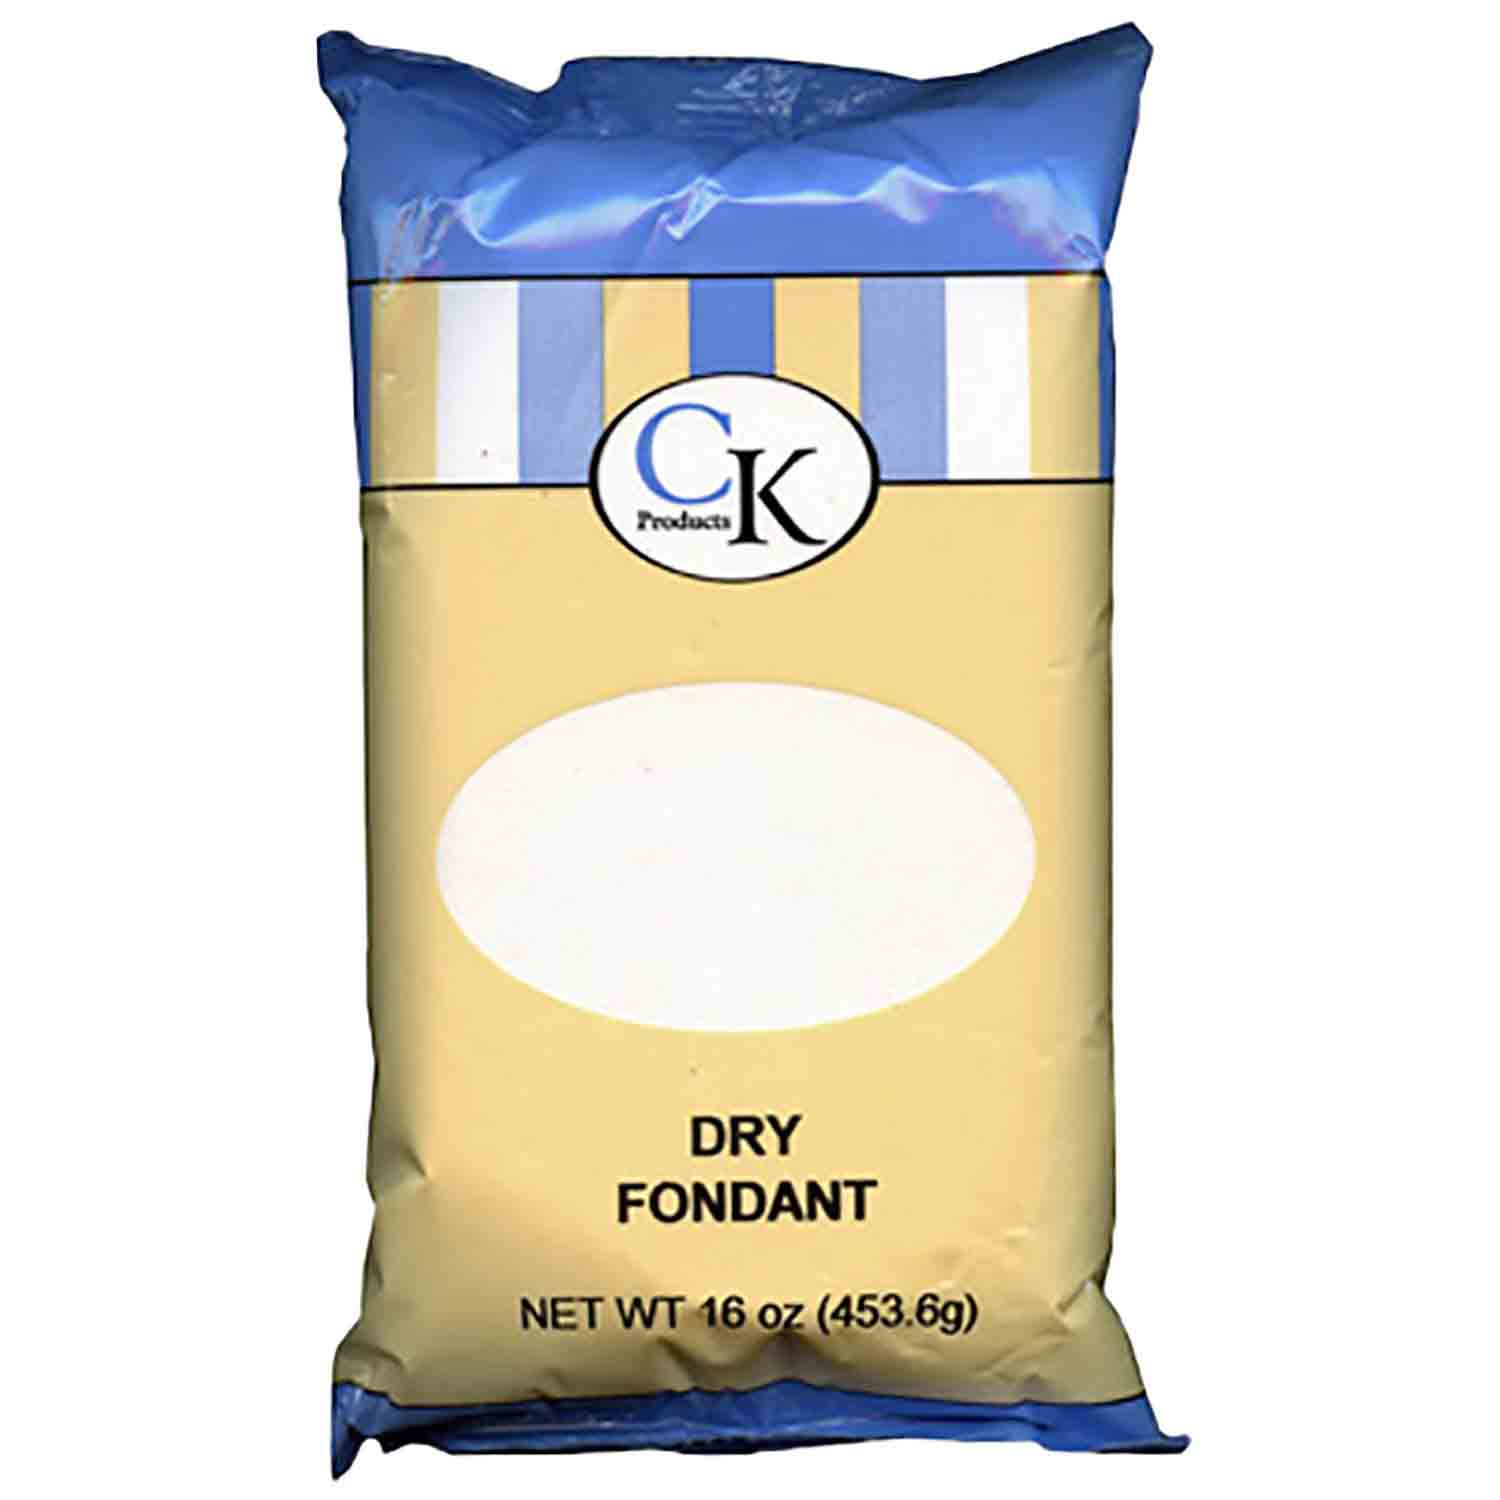 Dry Fondant Powdered Mix